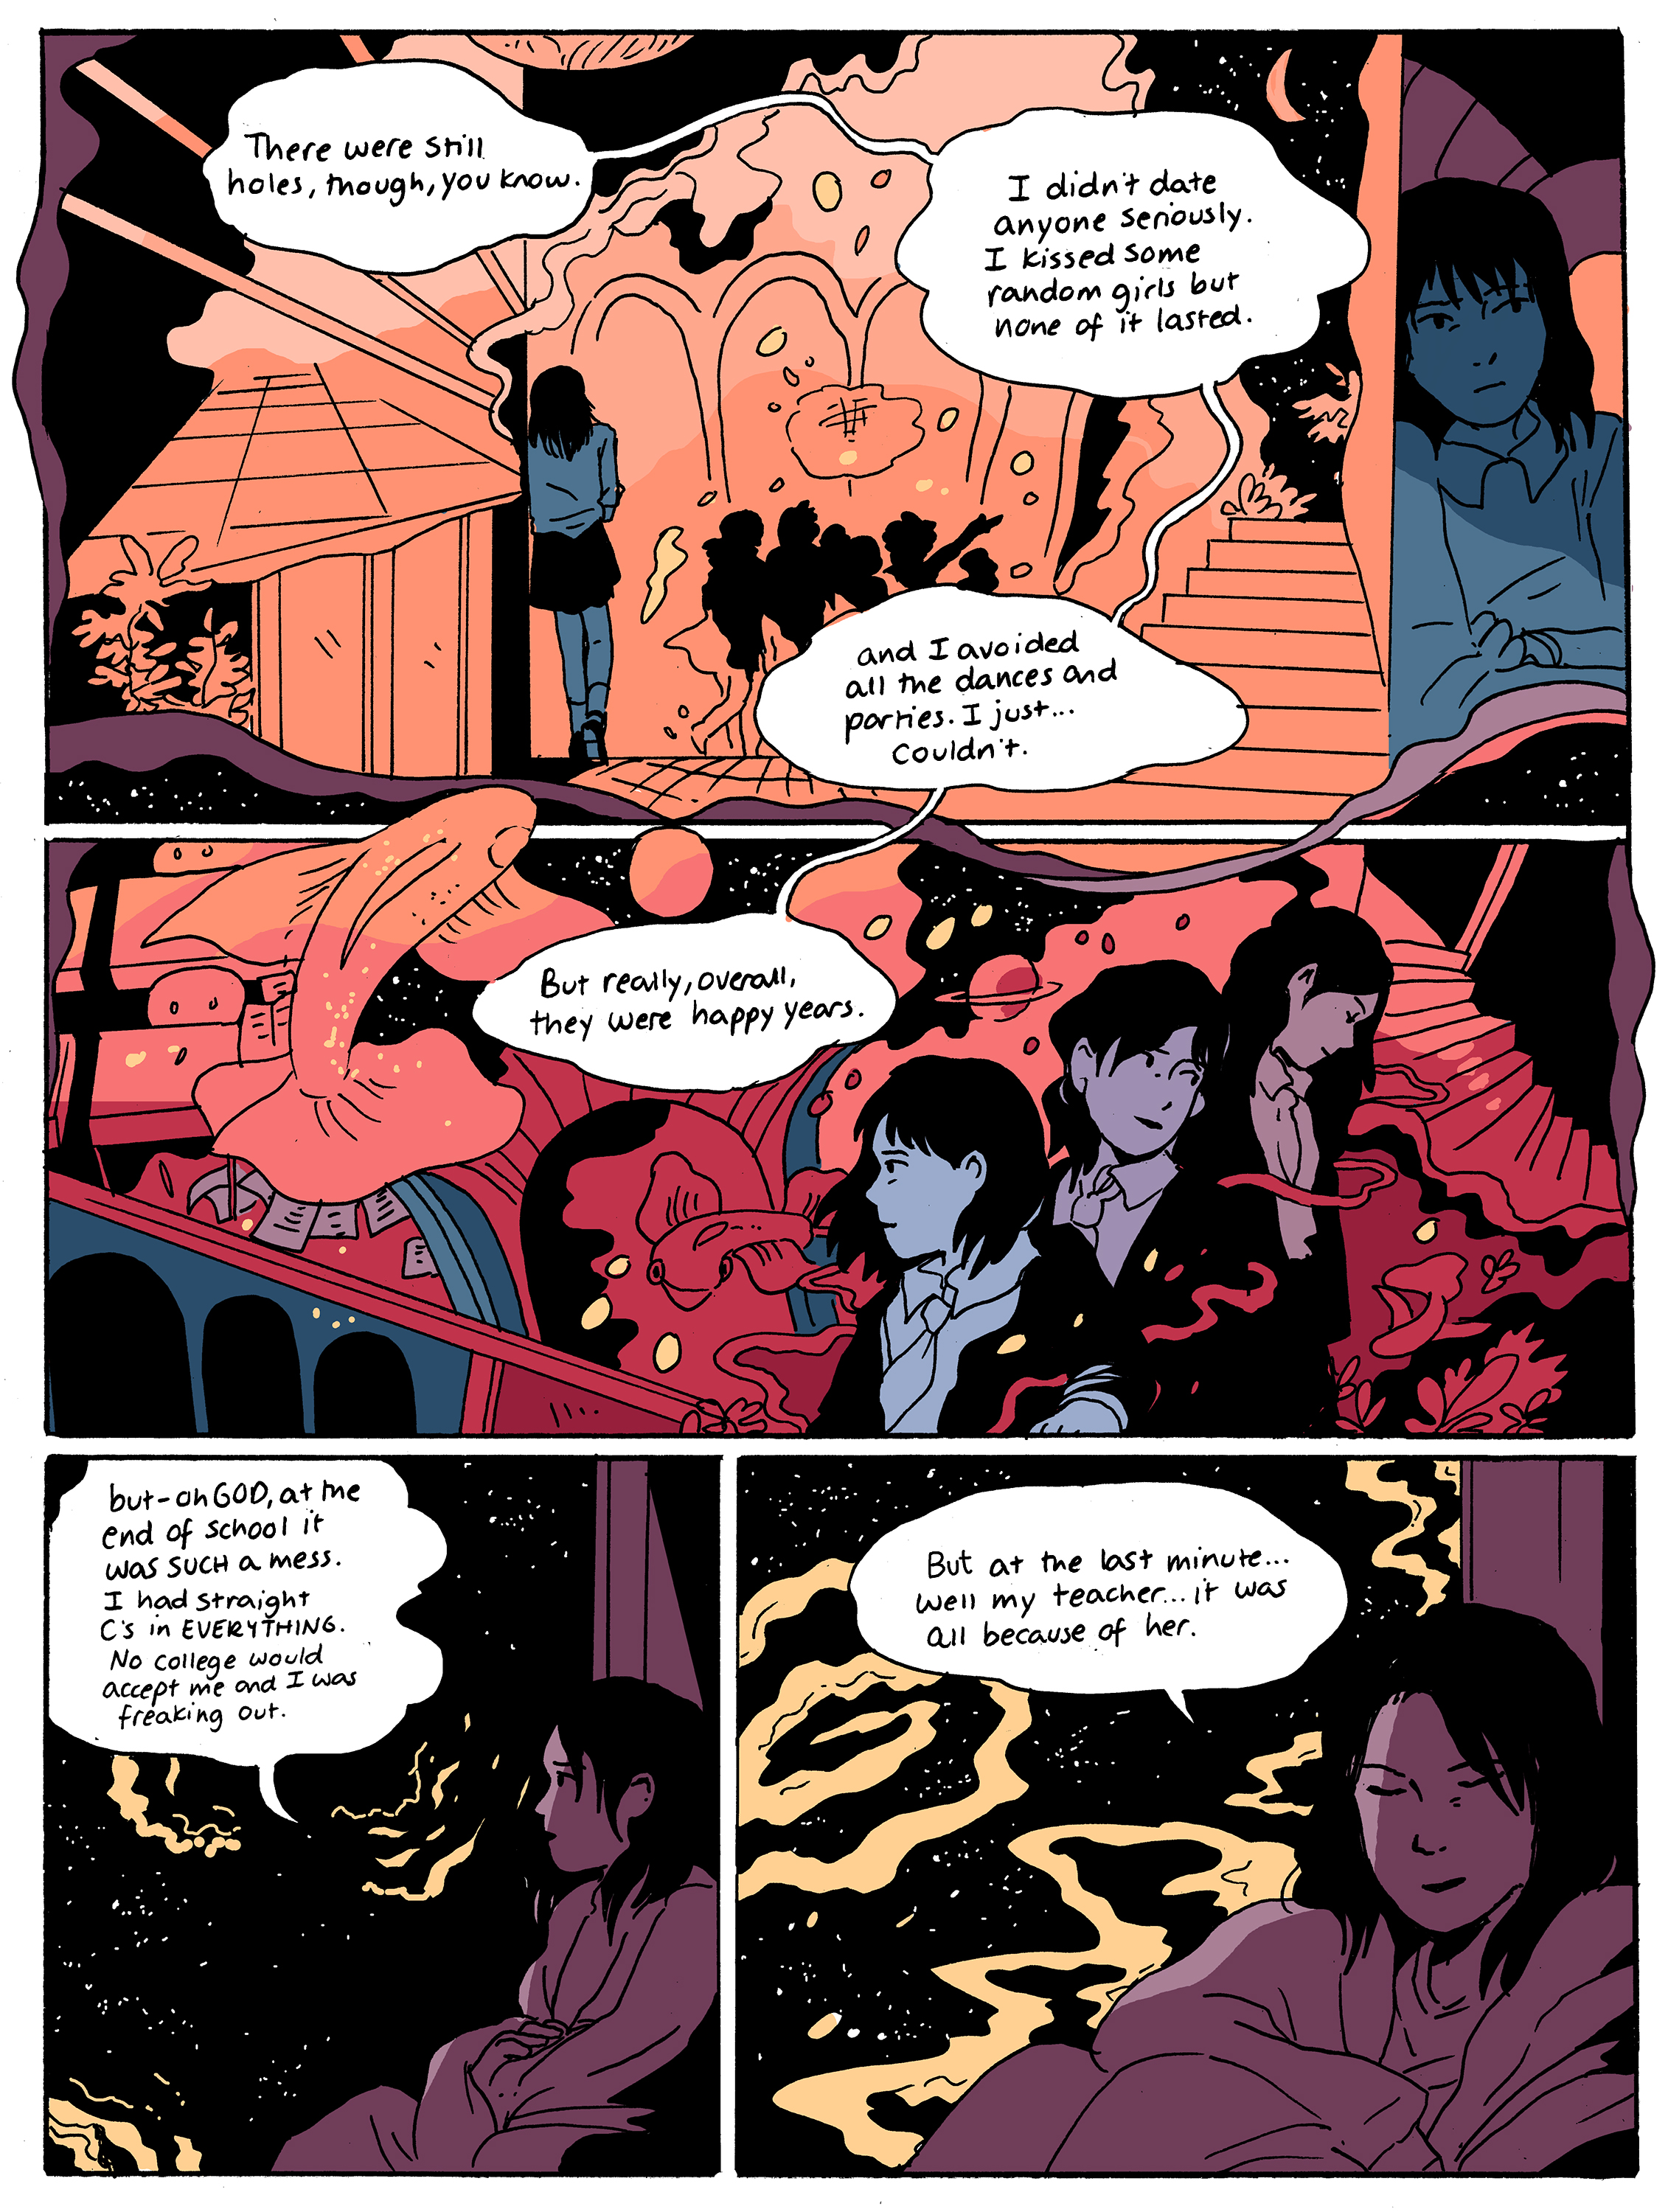 chapter13_page20.jpg